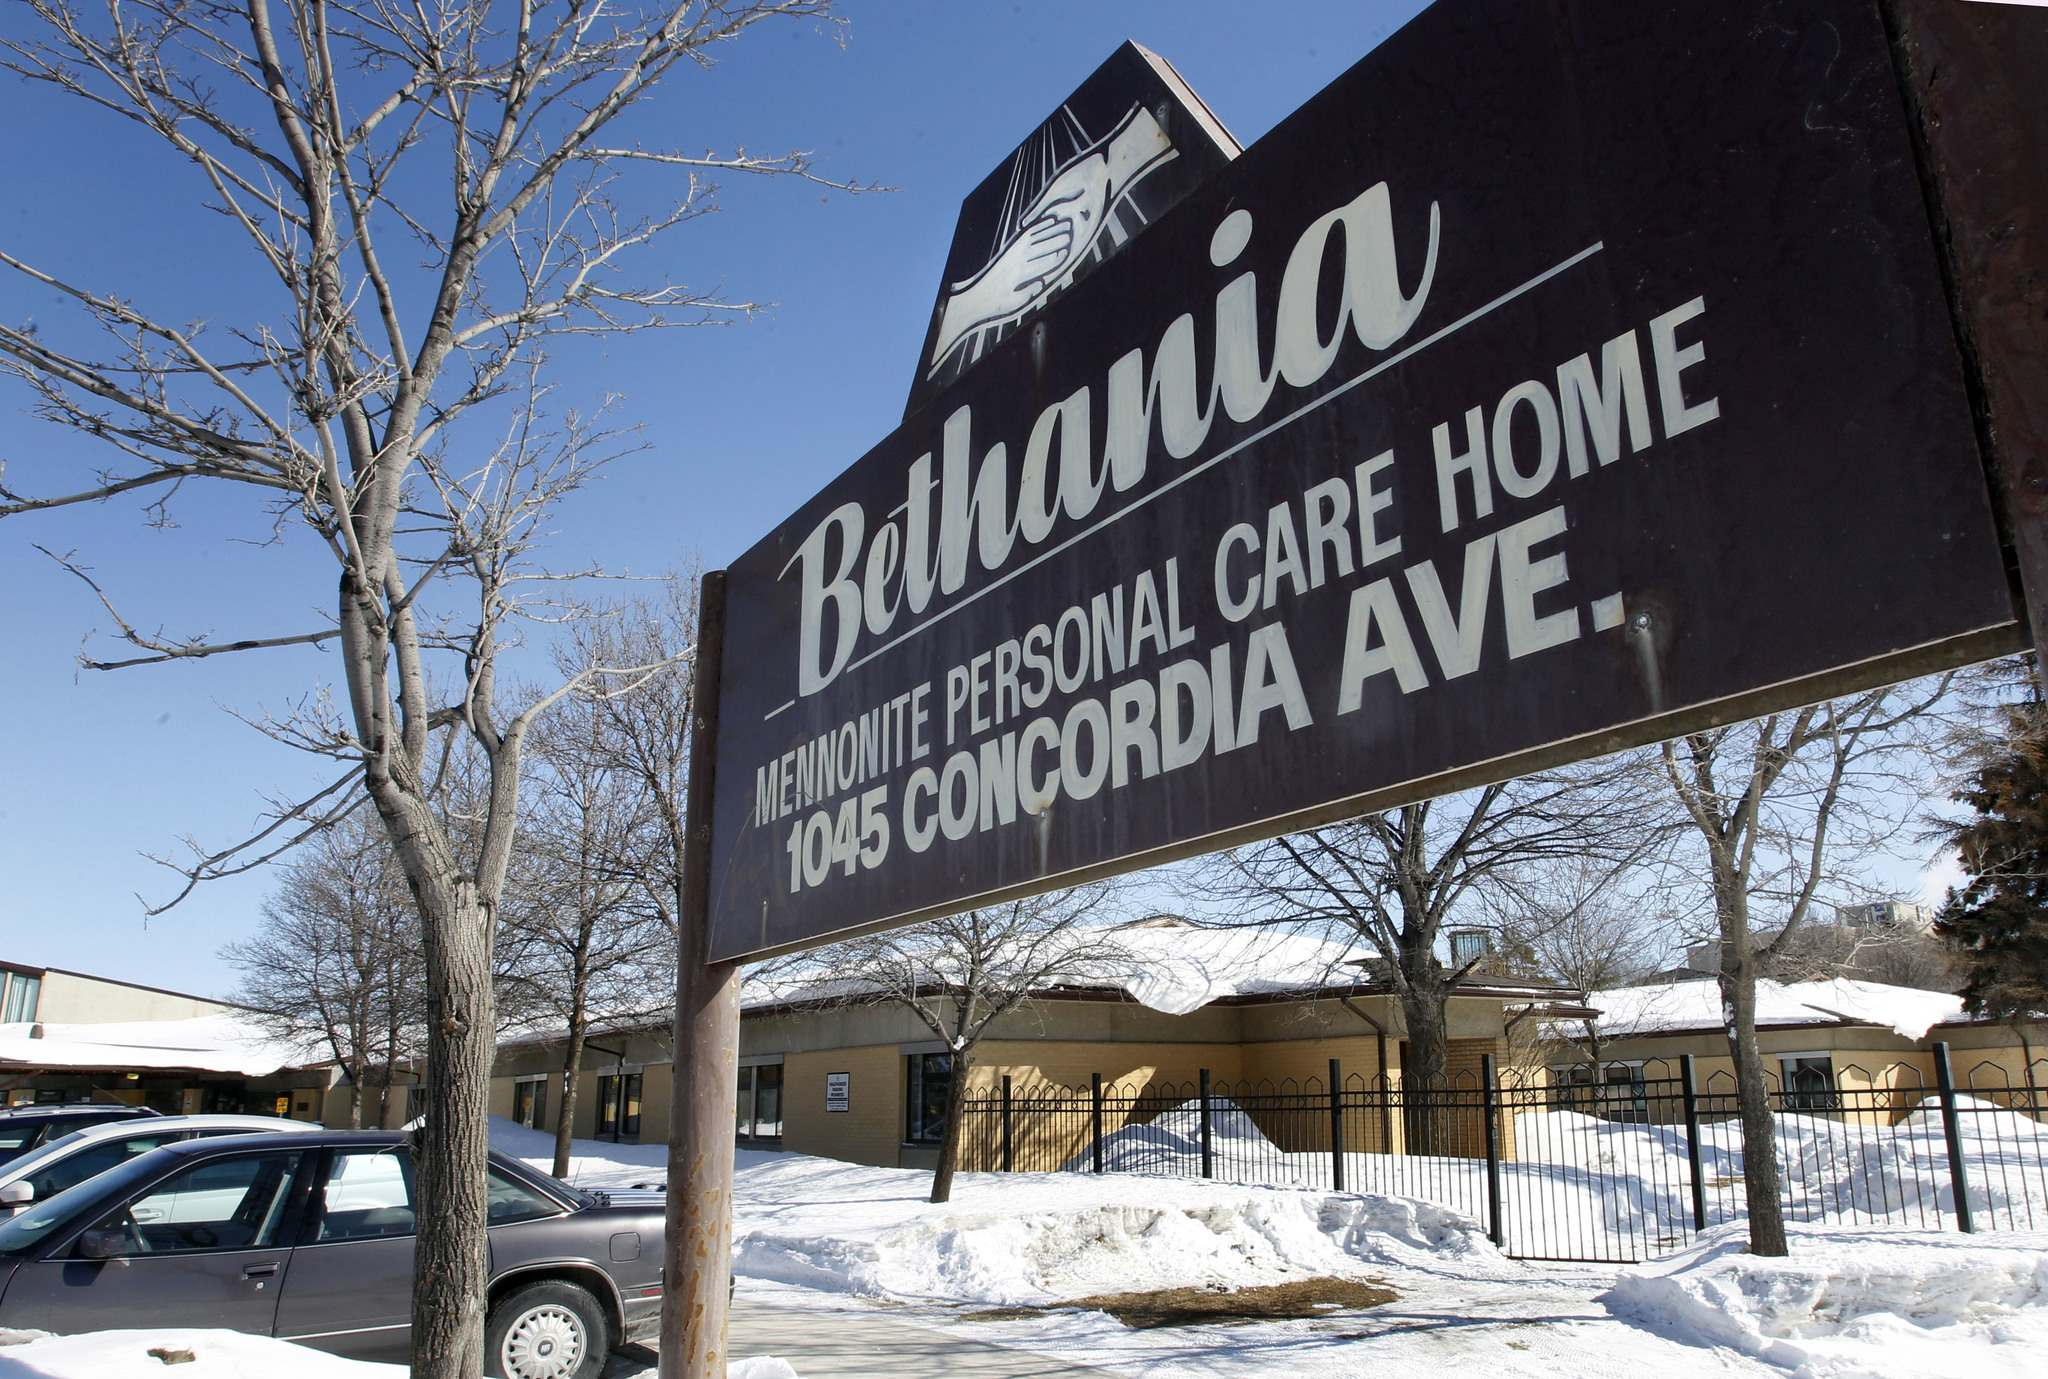 WAYNE GLOWACKI/WINNIPEG FREE PRESS FILES</p><p>Bethania Mennonite Personal Care Home will see funding reduced by $25,084.</p>